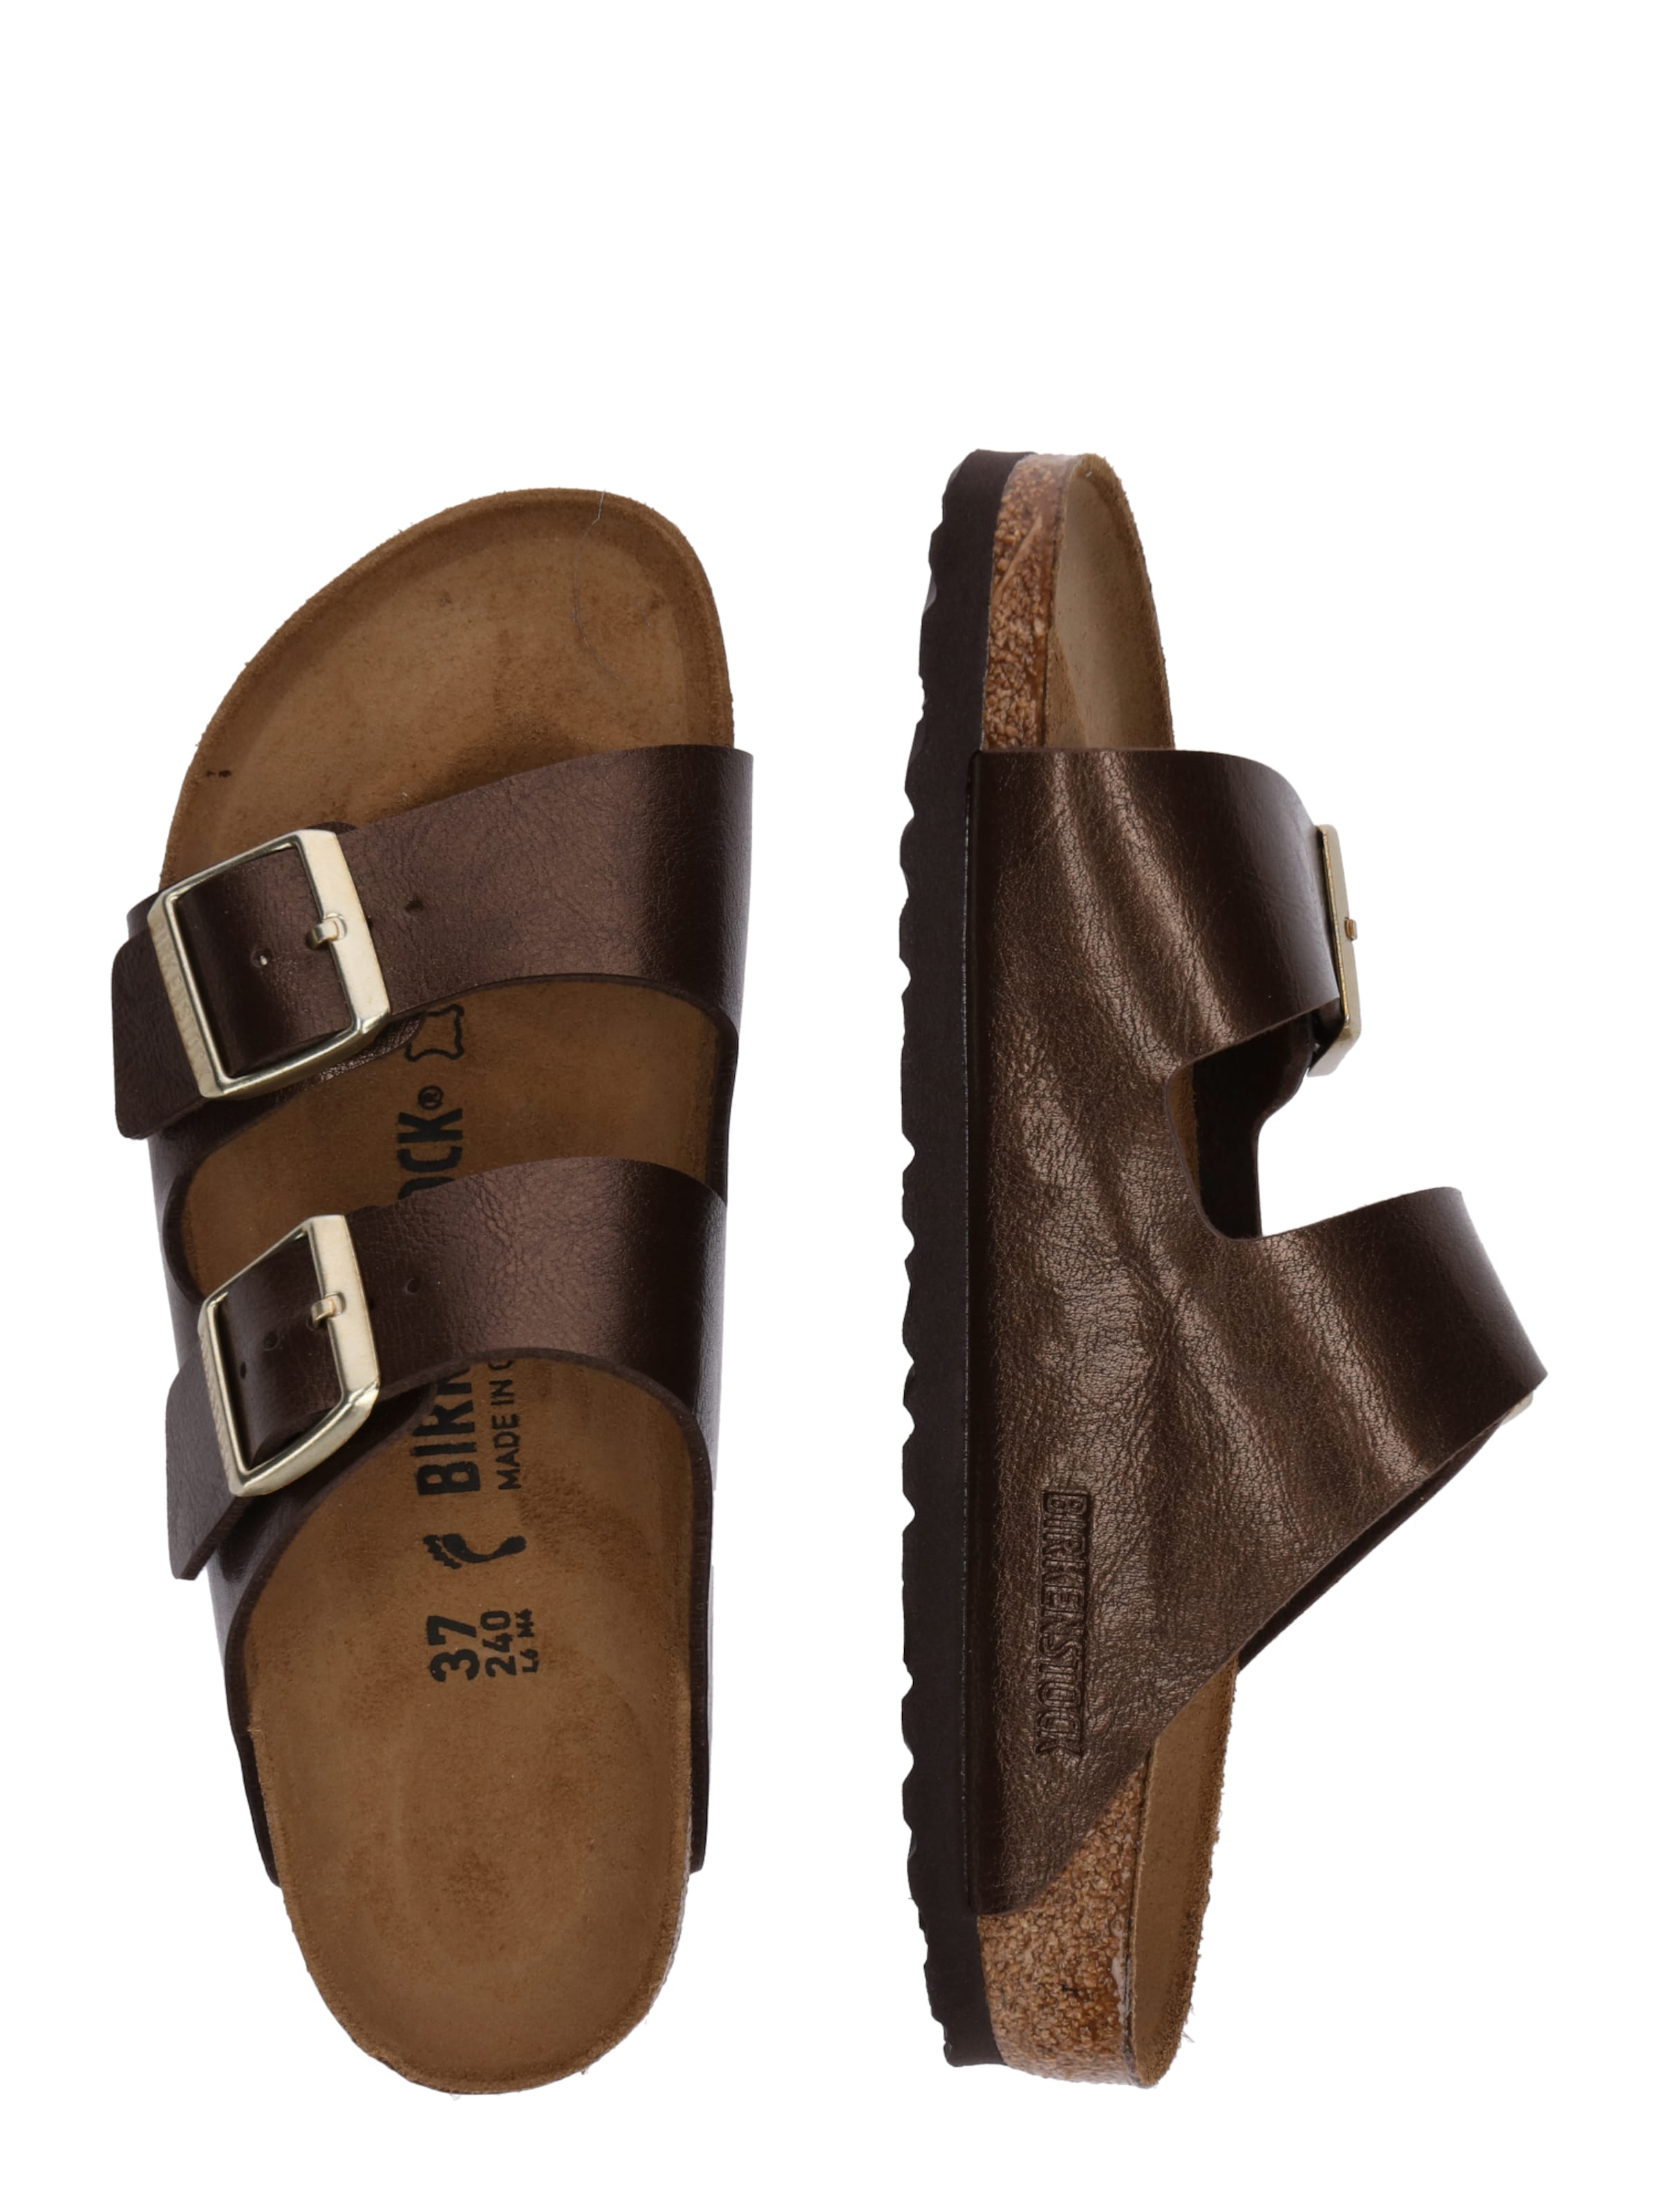 'arizona' MarronOr Mule 'arizona' MarronOr 'arizona' En Birkenstock Birkenstock Mule Mule En En Birkenstock ul1J3c5KTF